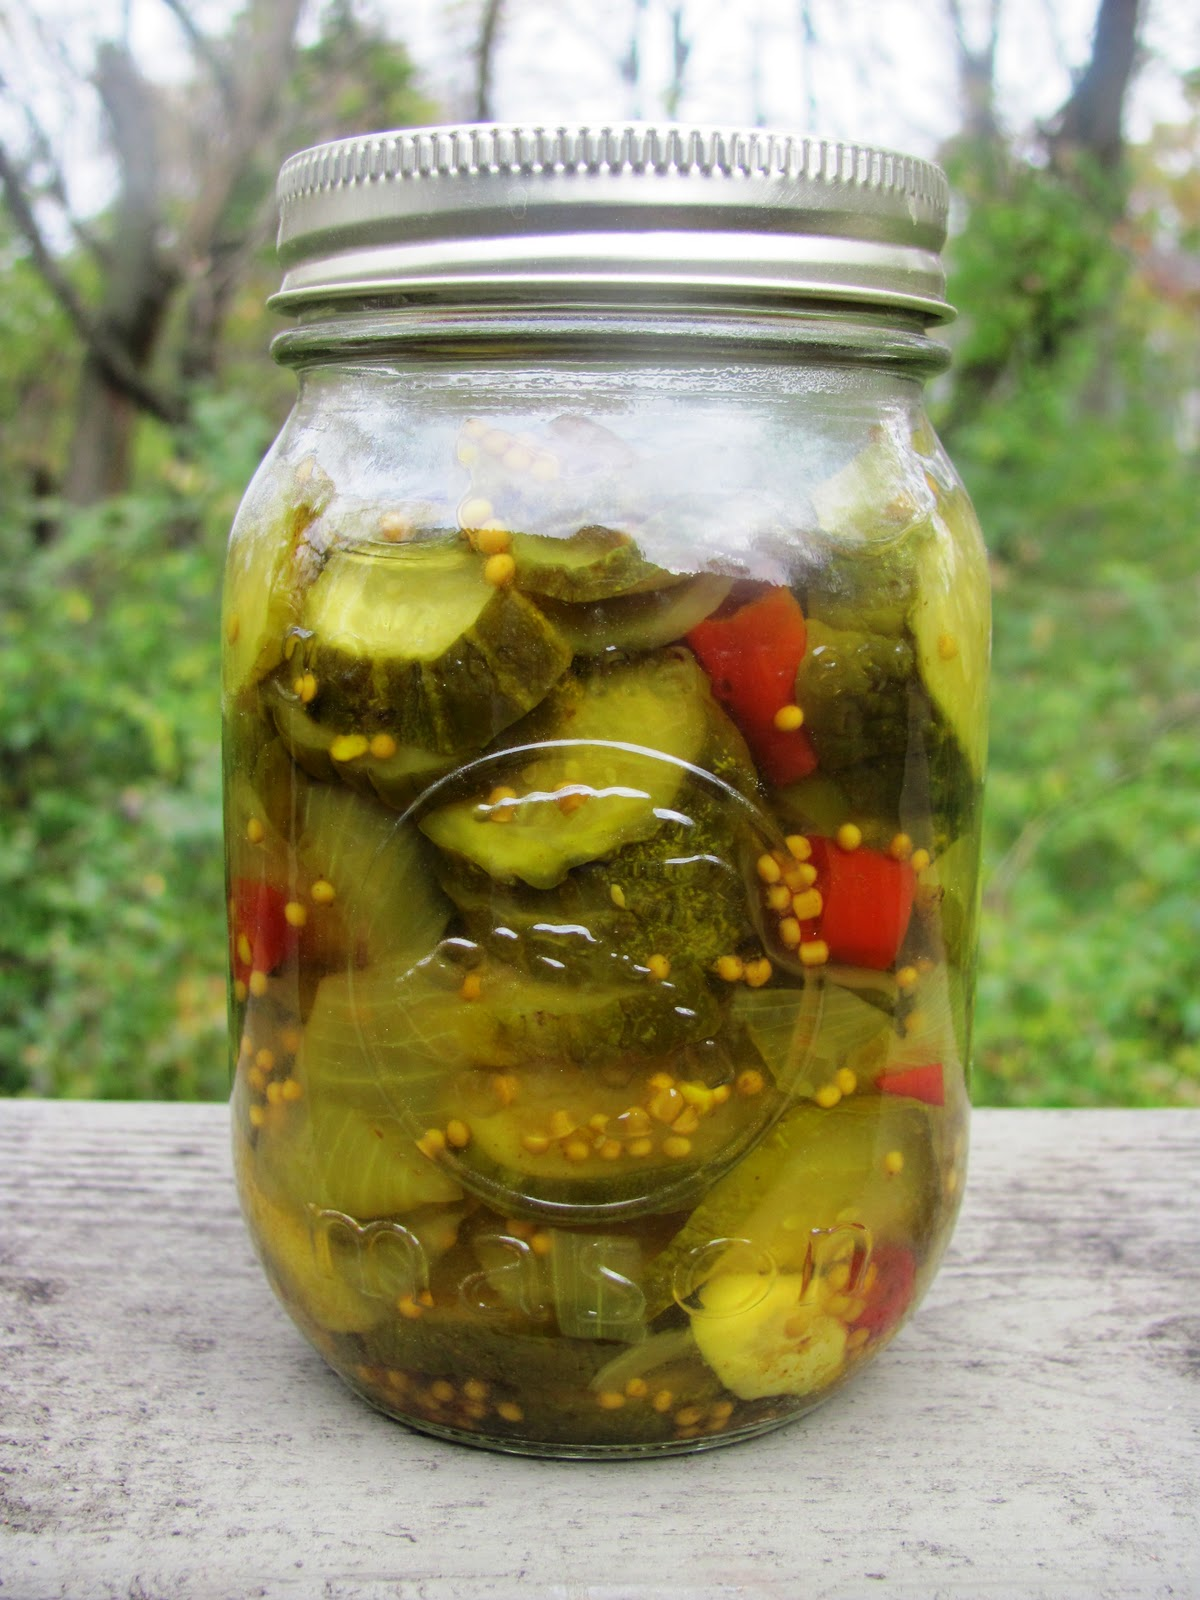 Creating Nirvana: Pickle Me Up: 10 Great Pickle Recipes